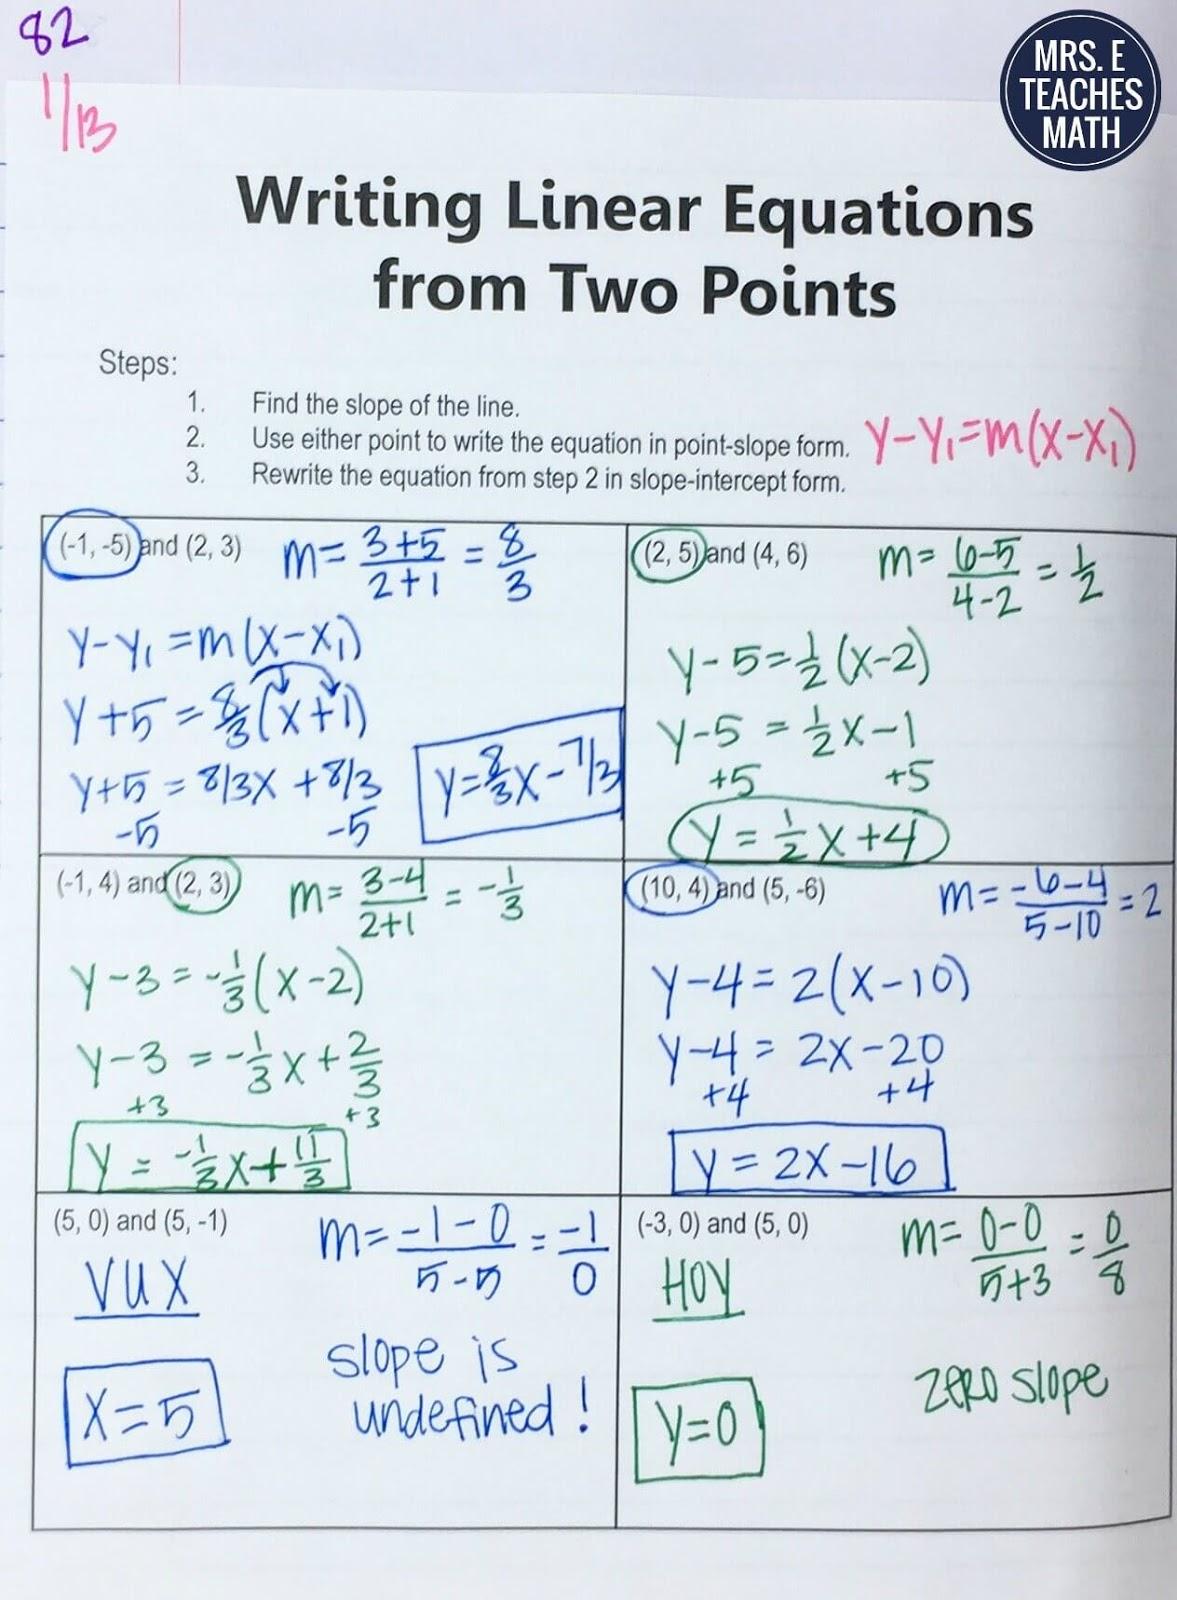 25+ Ideas For Teaching Equations Of Lines   Mrs. E Teaches Math